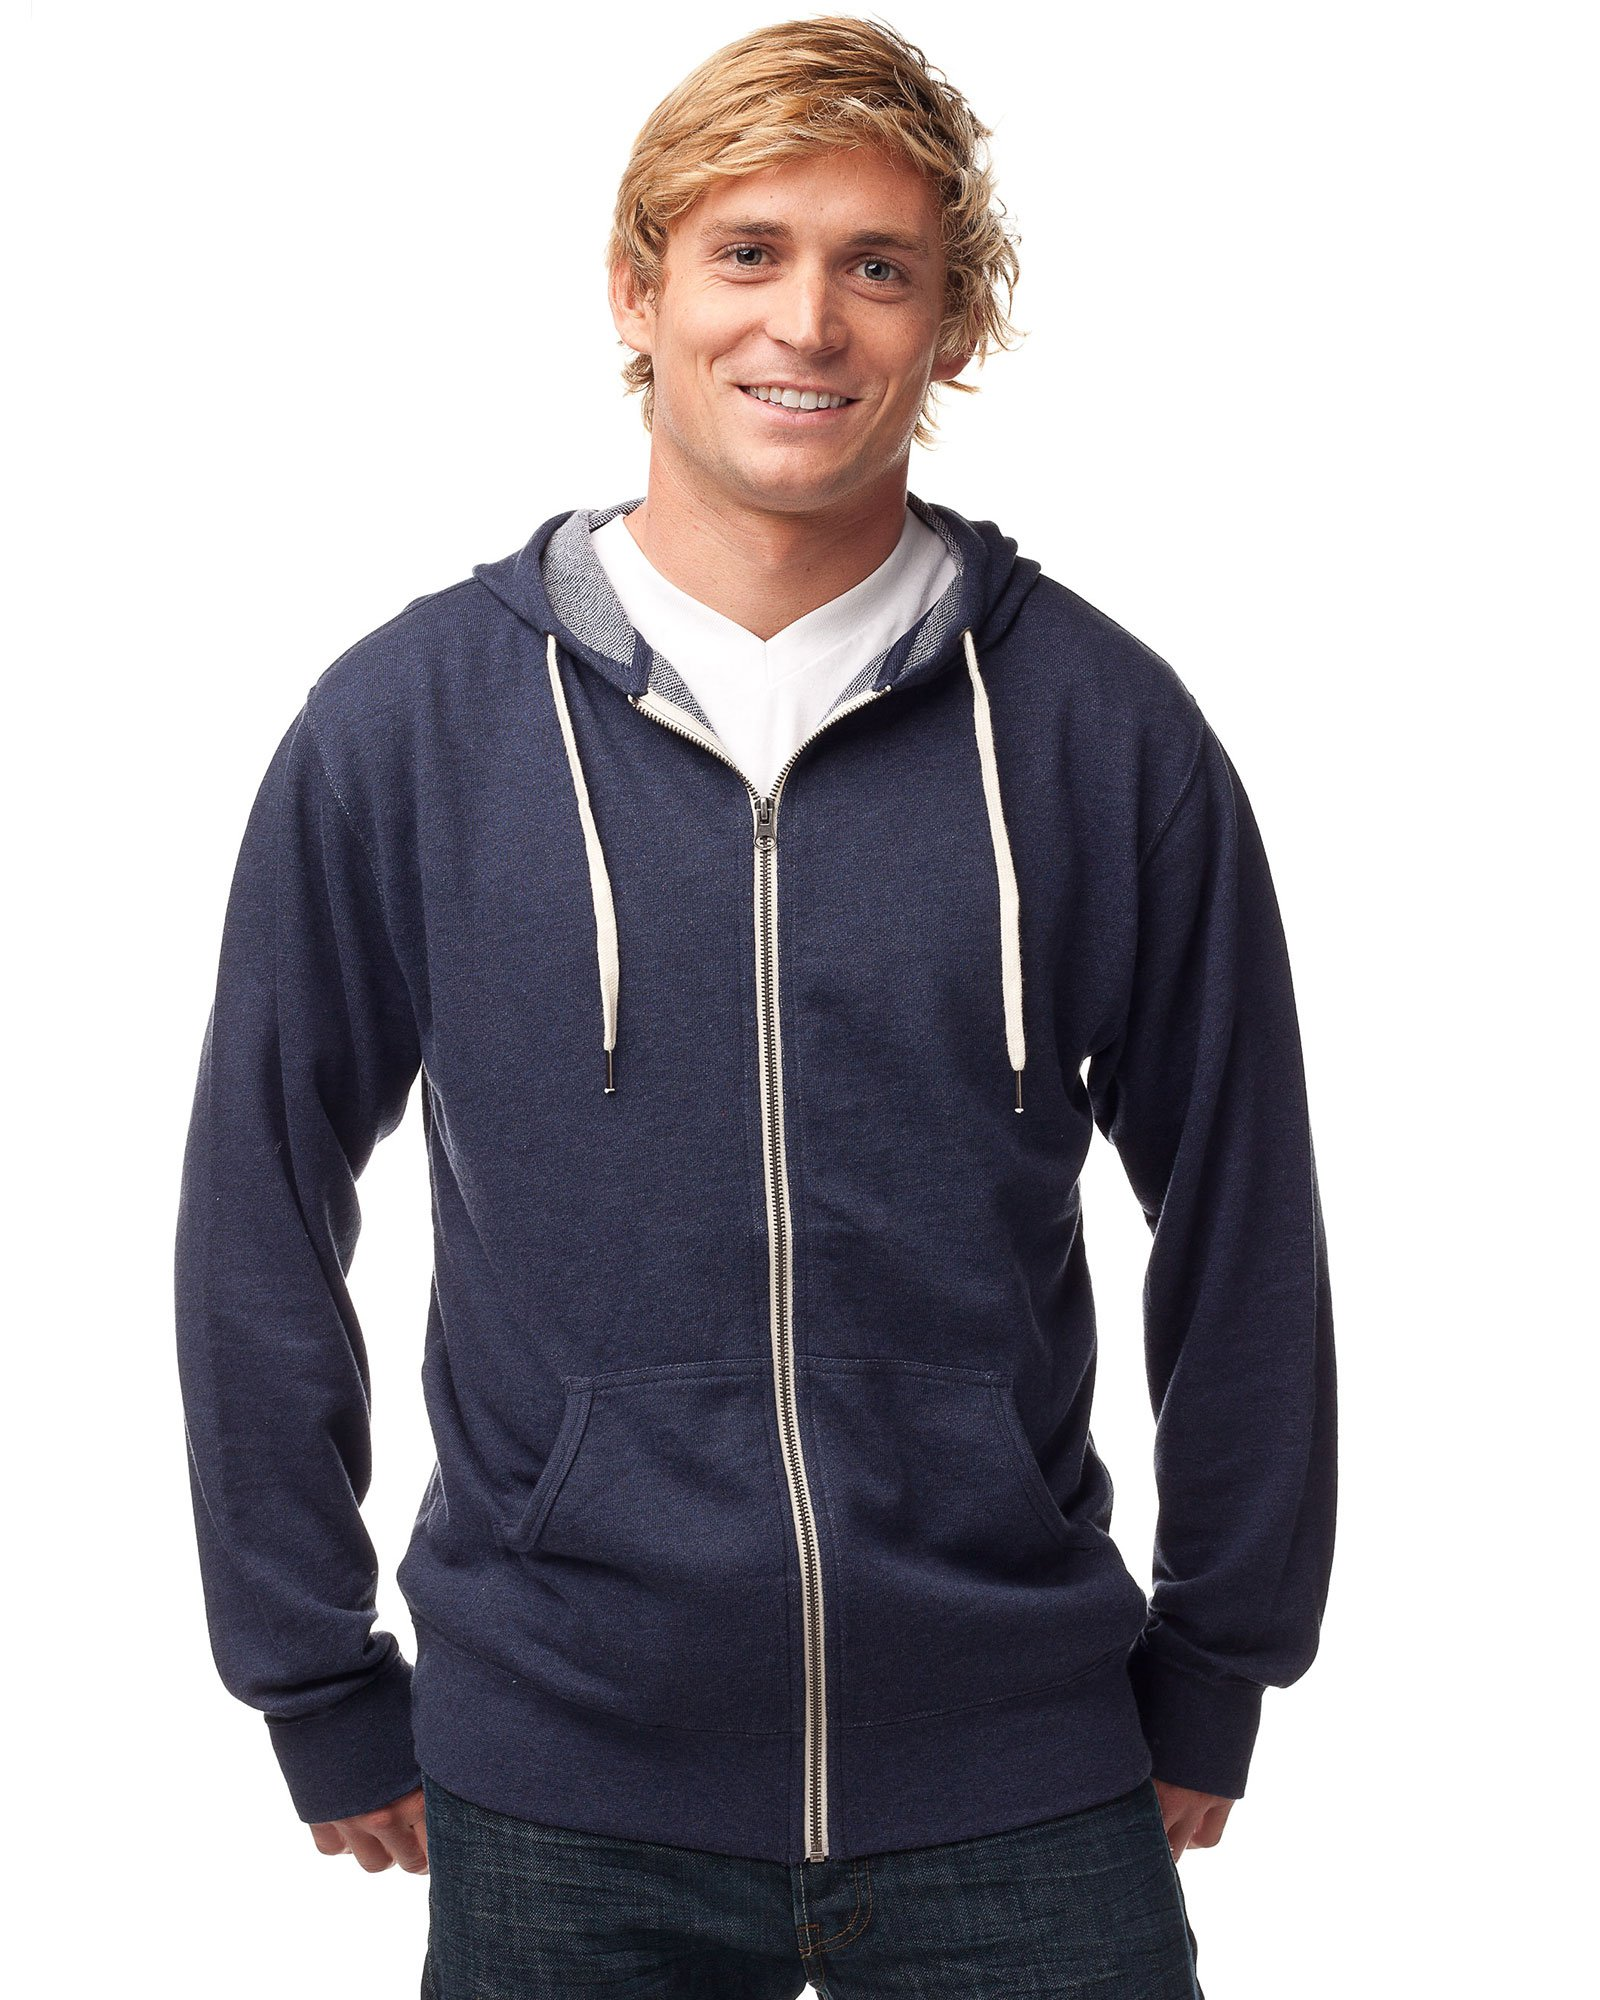 Global Blank Slim Fit French Terry Lightweight Zip up Hoodie for Men and Women XXL Navy Blue